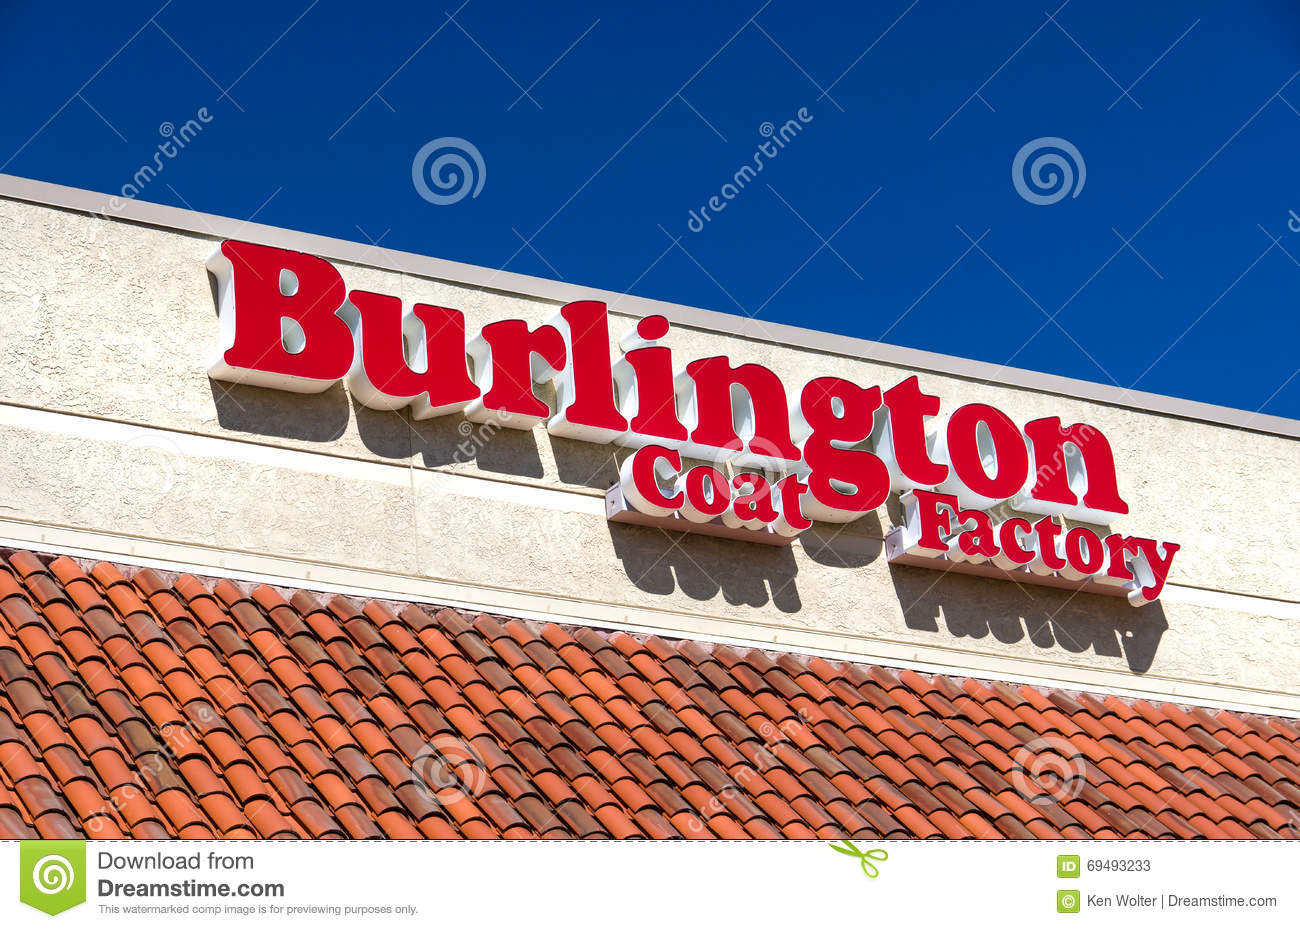 burlington coat factory ethnography Burlington coat factory near me - browse burlington coat factory near me on the map and find a list of burlington coat factory locations in your area.